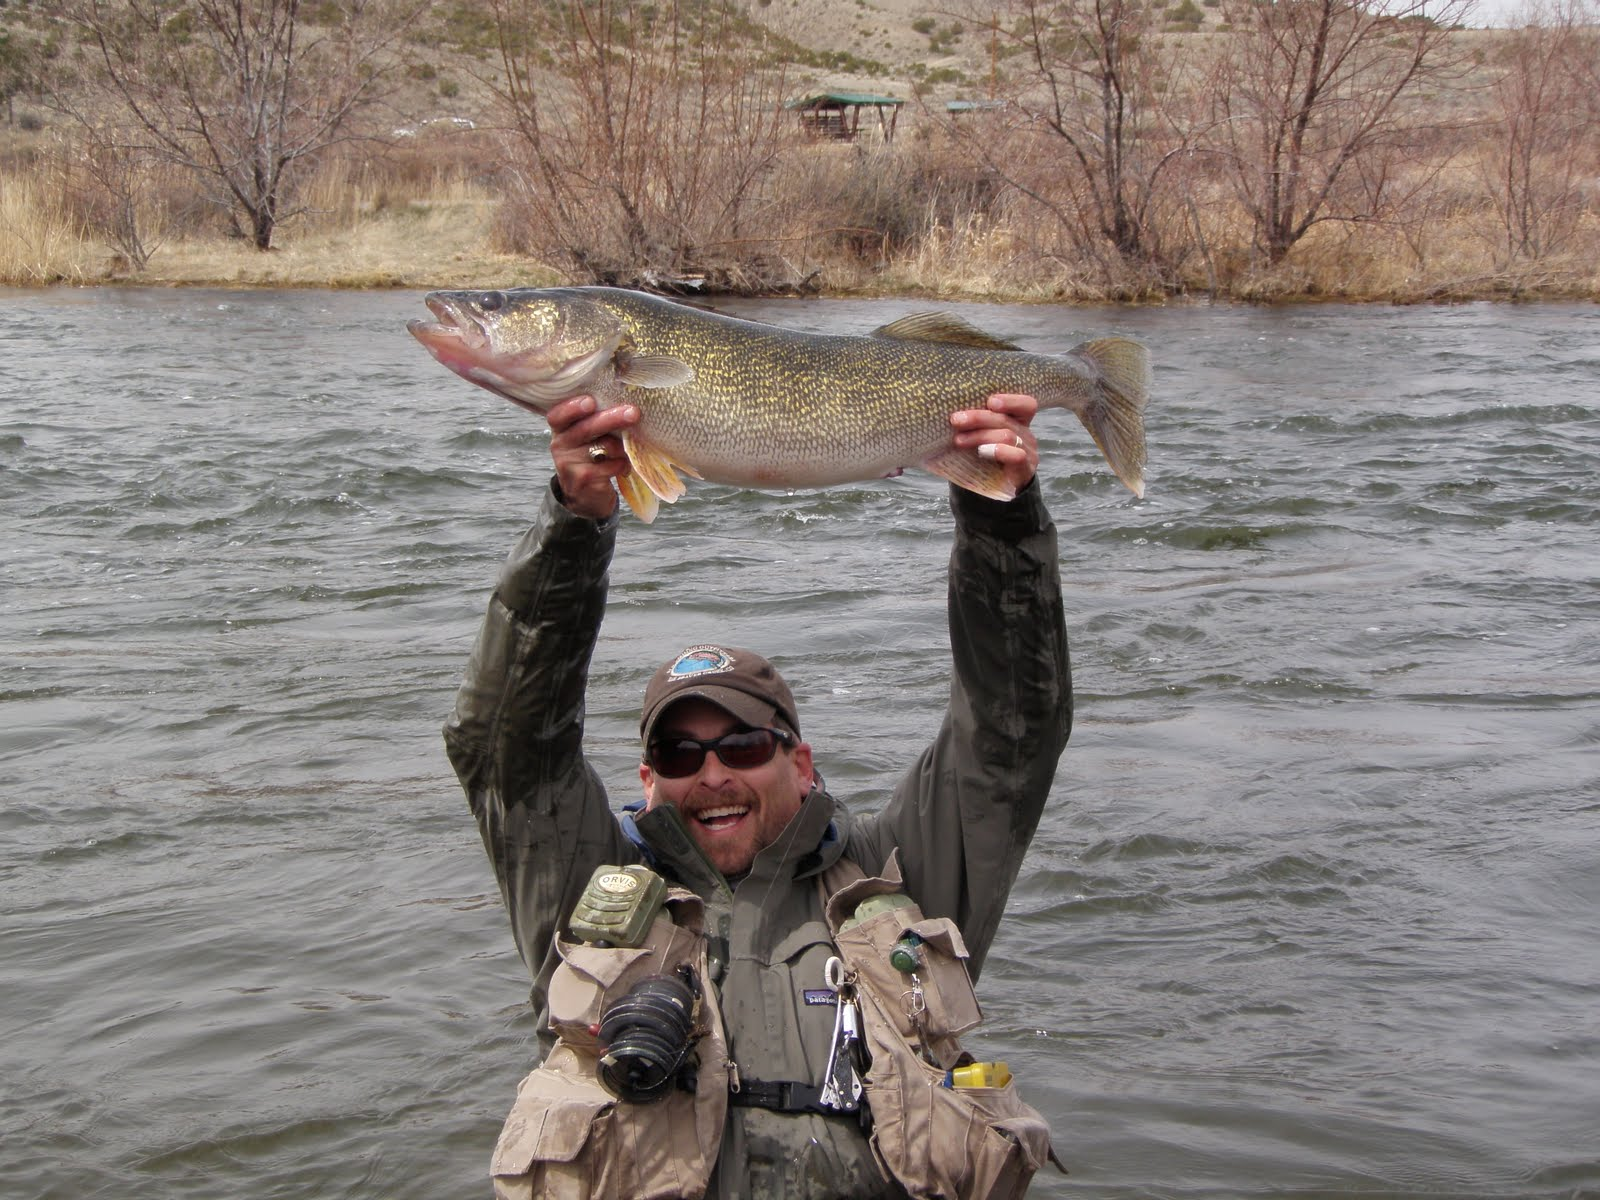 wyoming fly fisher big walleye on grey reef